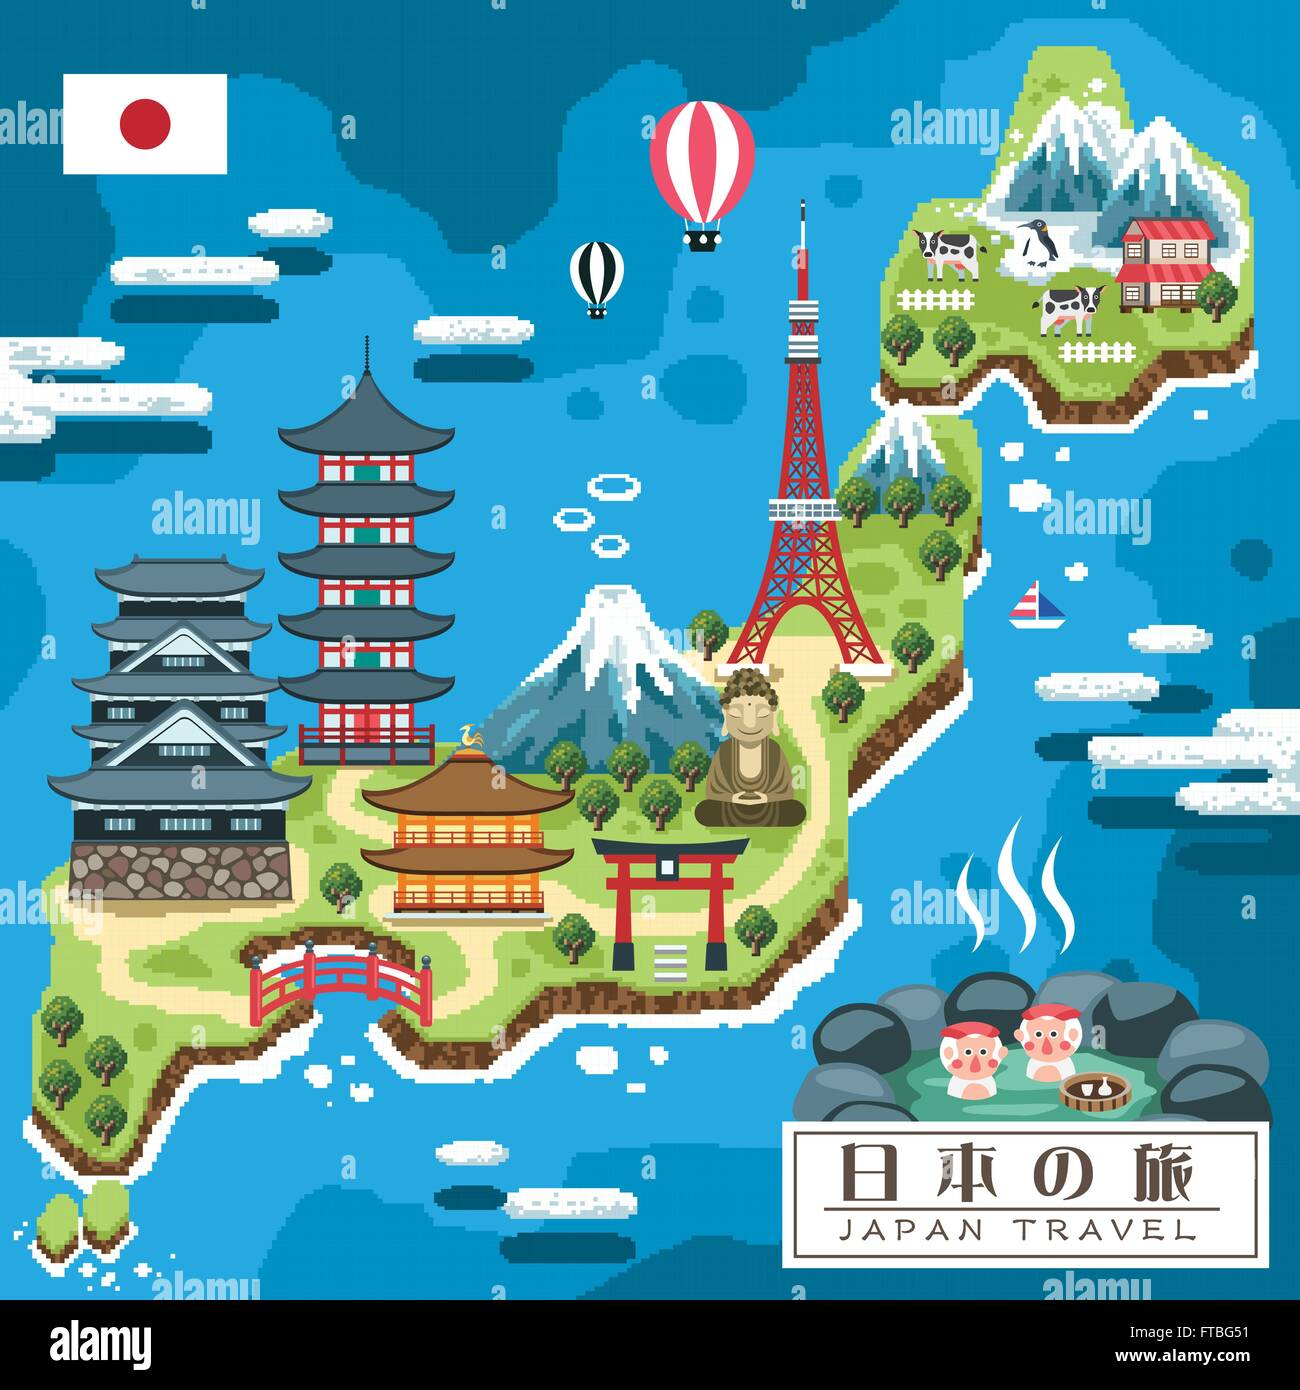 Funny Japan Travel Map In Pixel Style Japan Travel In Japanese - Japan map vector art